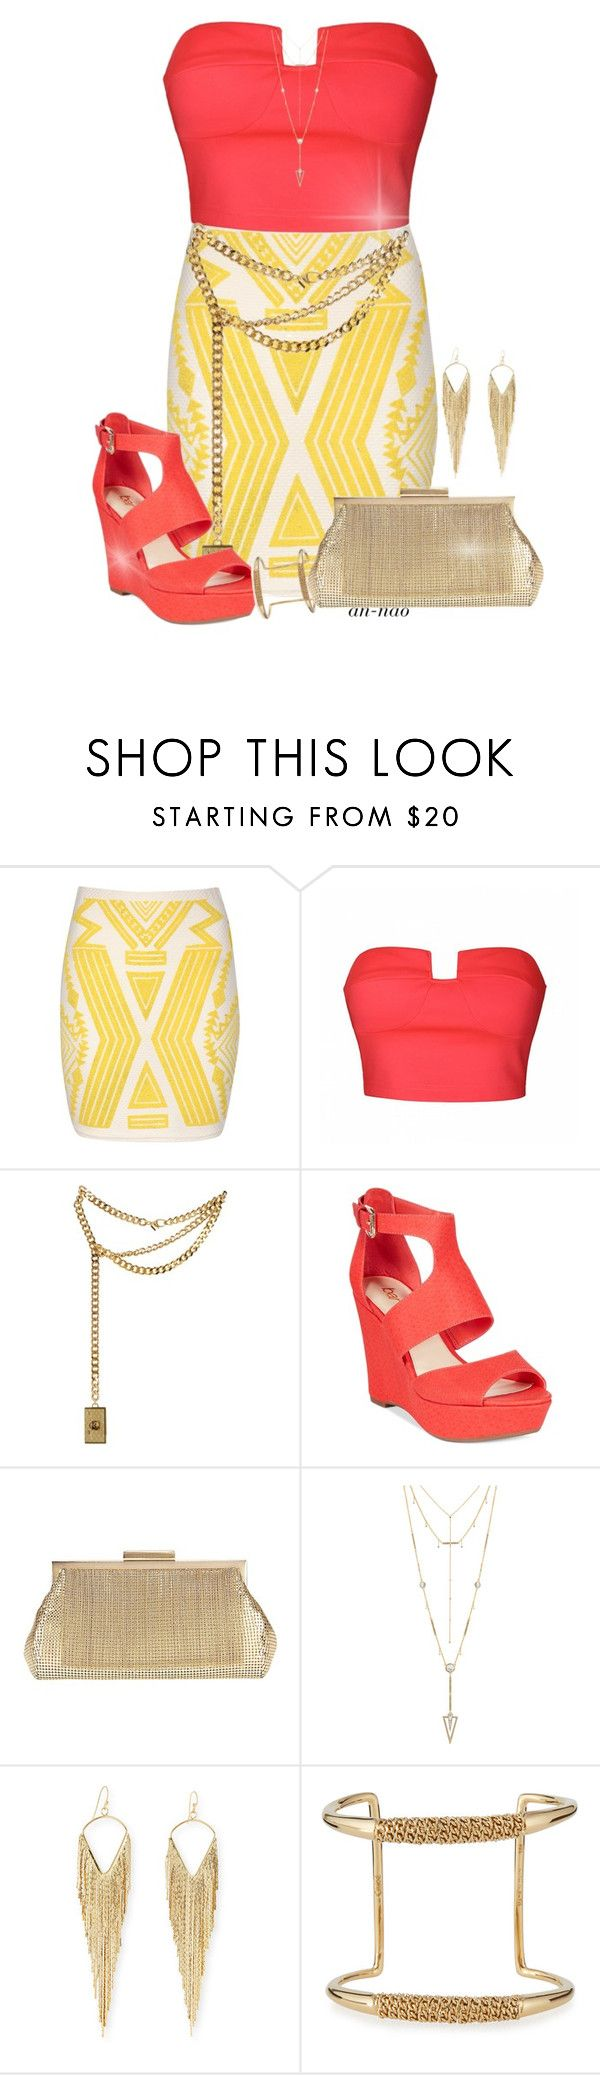 """Aztec Outfit."" by an-nao ❤ liked on Polyvore featuring Jane Norman, Ally Fashion, Moschino, Bar III, Whiting & Davis, House of Harlow 1960, Jules Smith and Chloé"